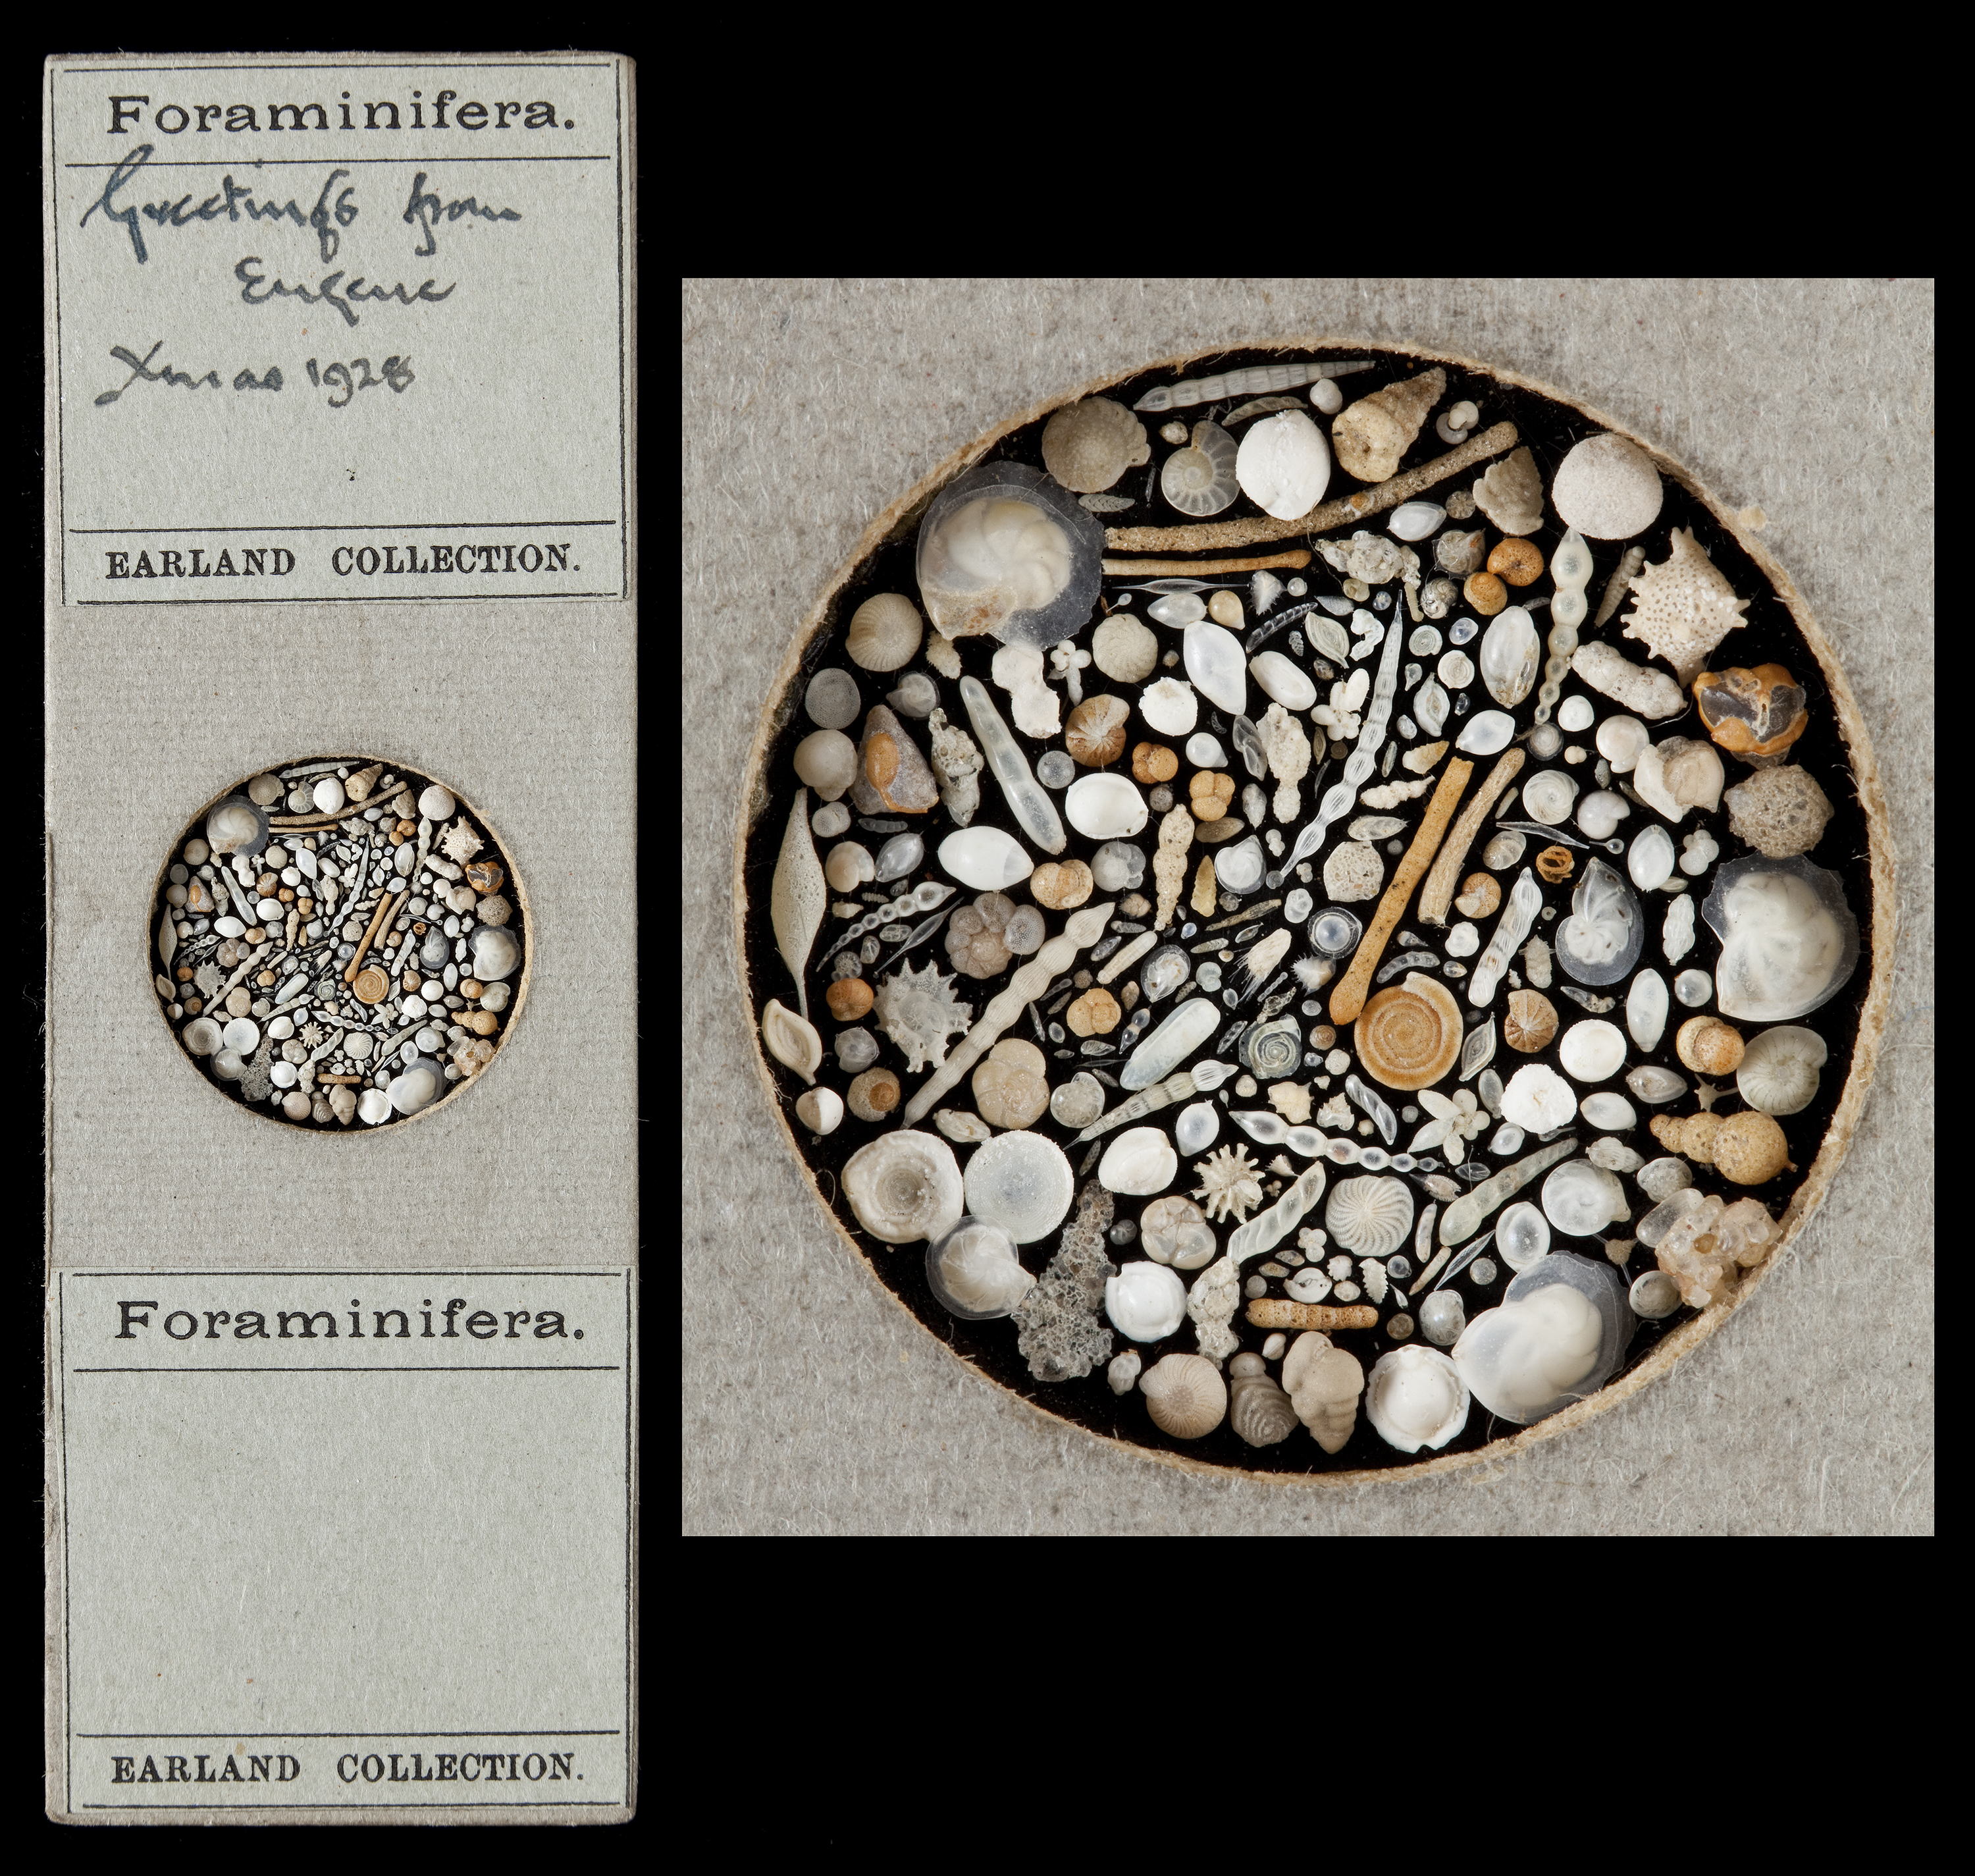 foraminifera_greetings_eugenie_xmas1928.jpg